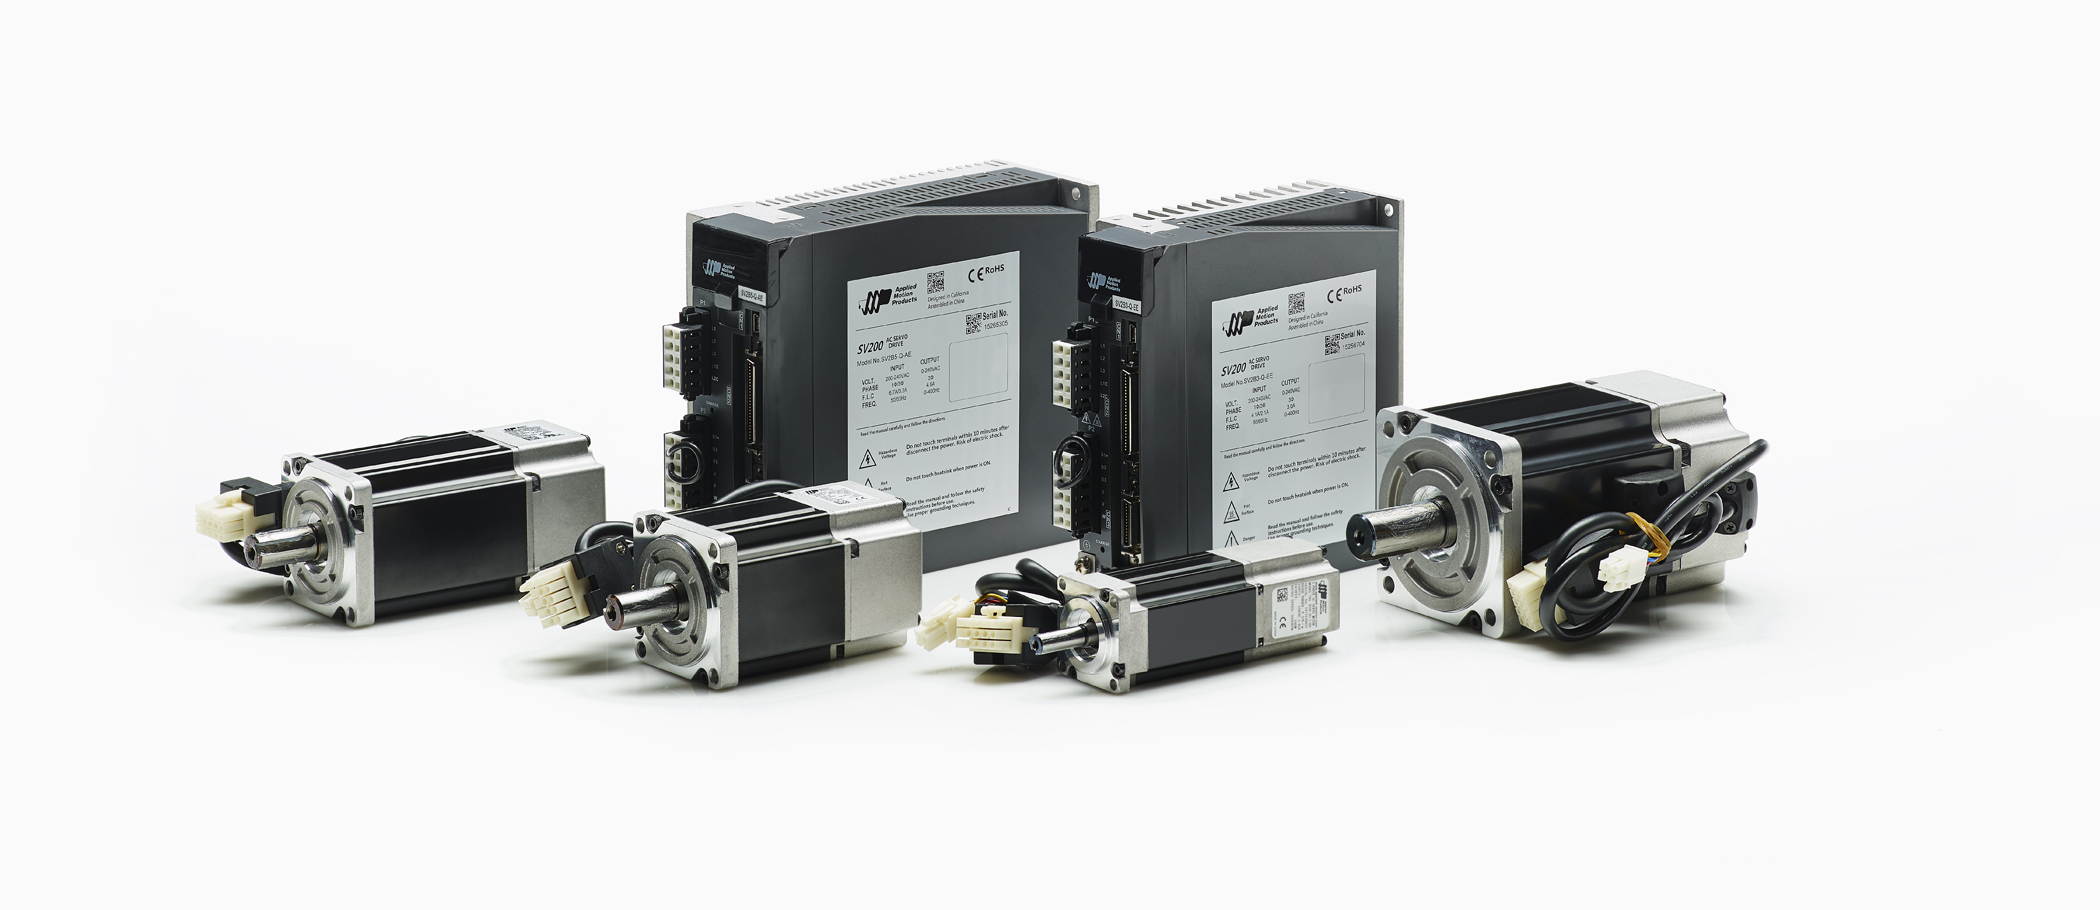 Applied motion products new sv200 series digital servo drives for Advanced dc motors inc